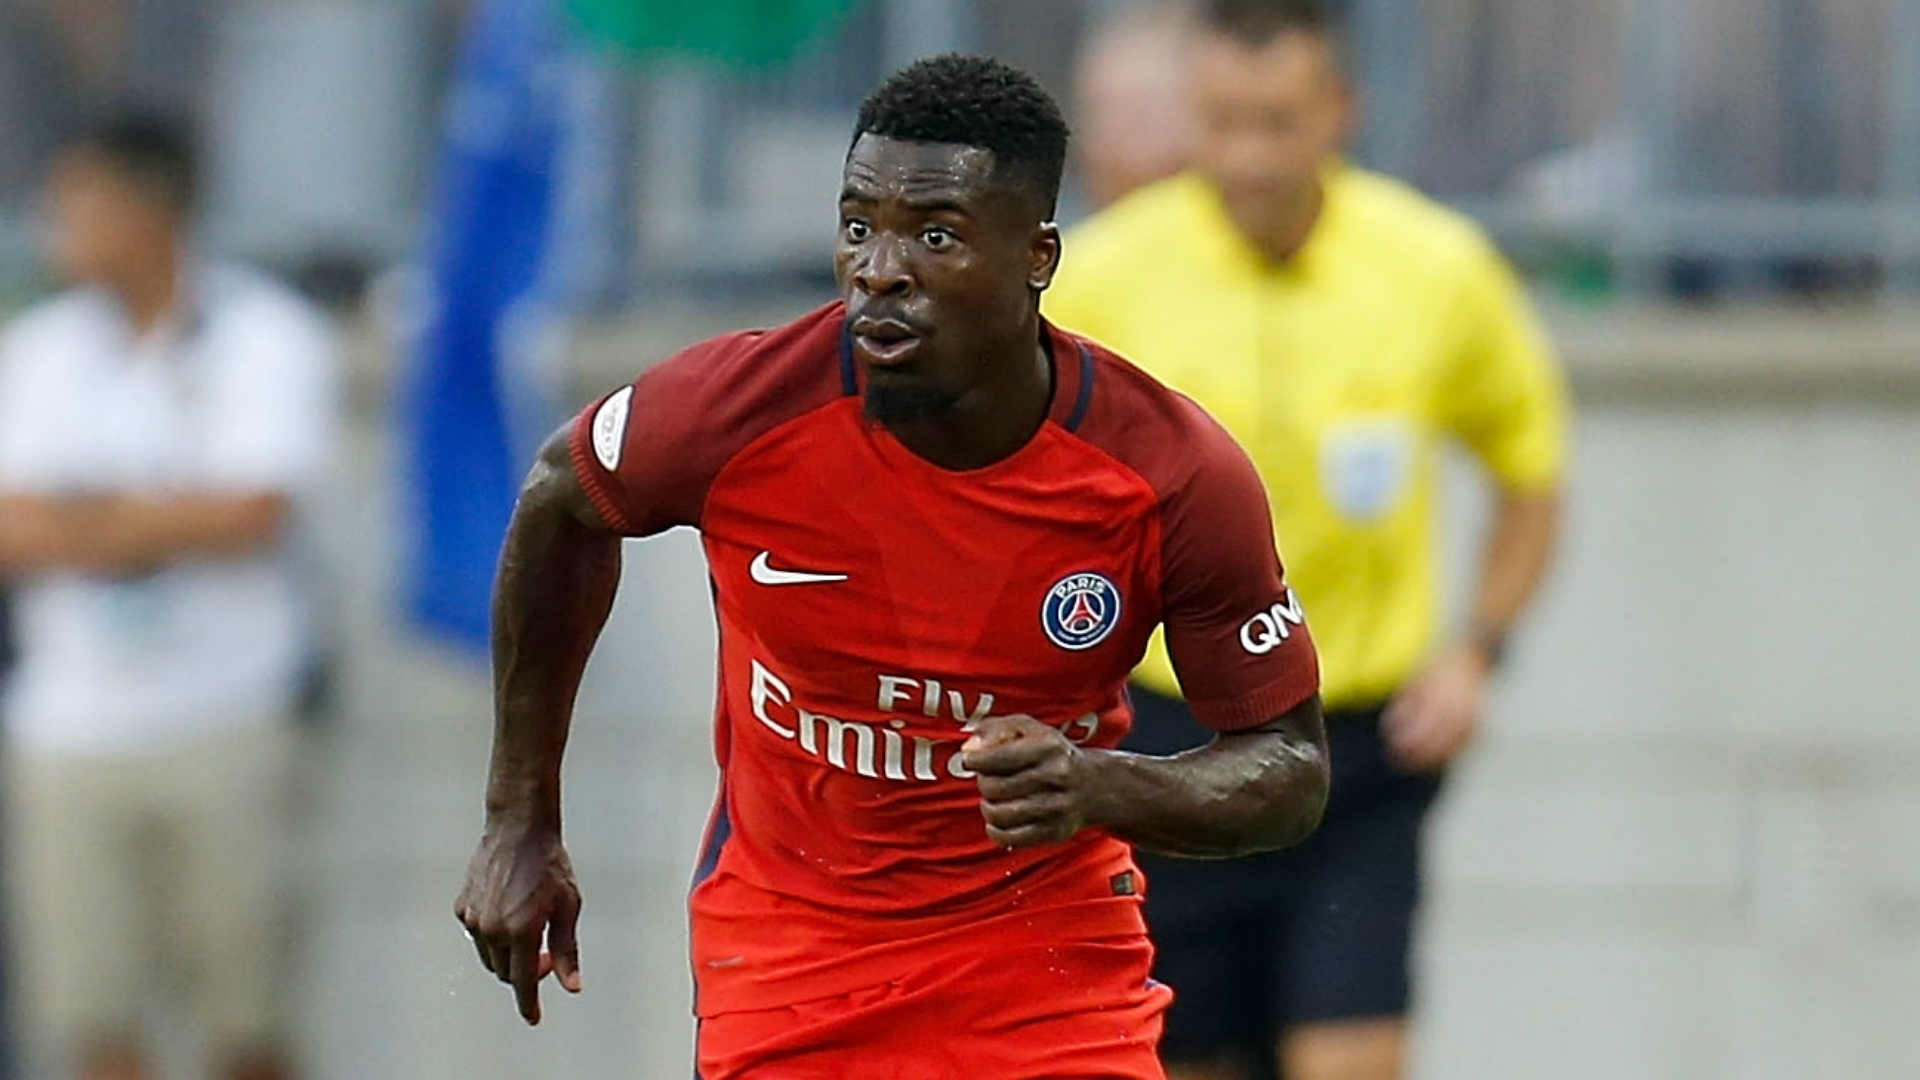 Manchester United are rumored to be making signing a defensive midfielder a priority, with Nemanja Matic looking set to join the team from EPL champions Chelsea. PSG right-back Serge Aurier is also reportedly a target for the British side.